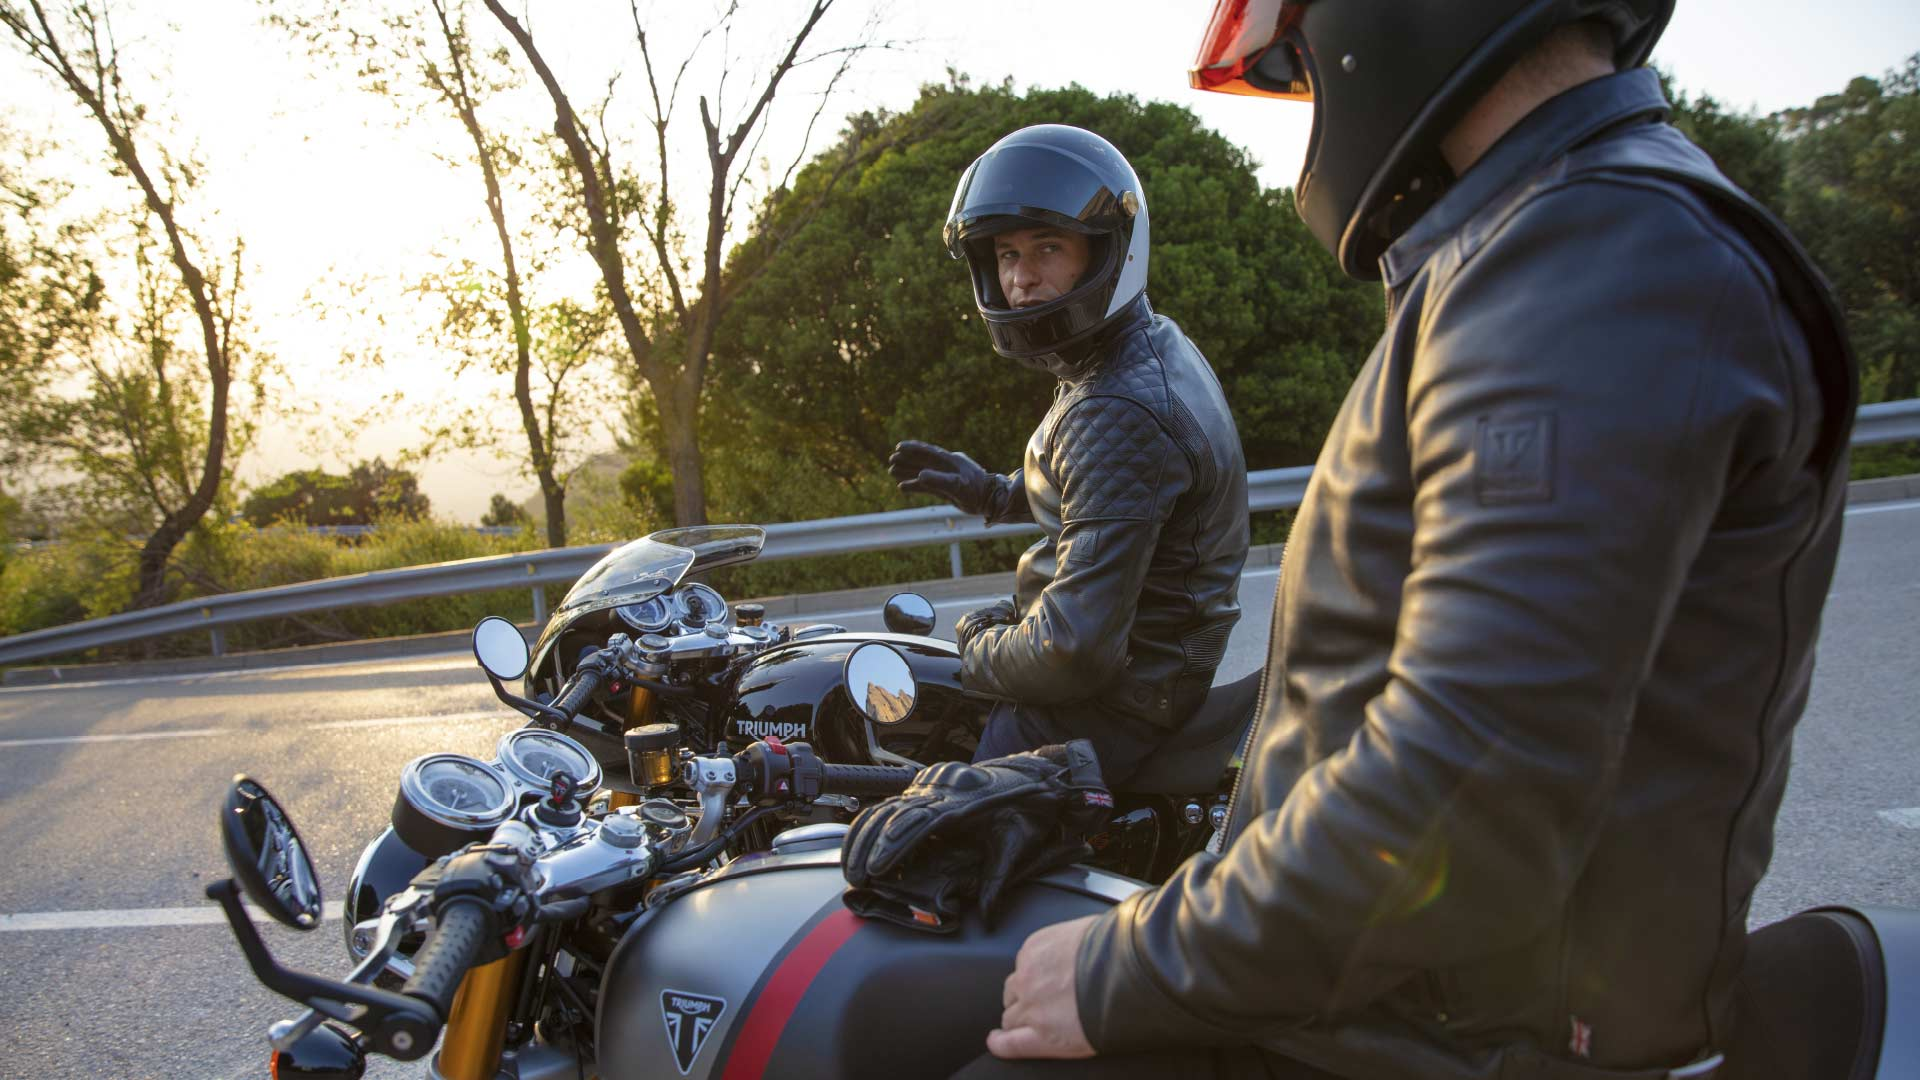 Two riders taking a moment to chat together on their Triumph Thruxton RS motorcycles